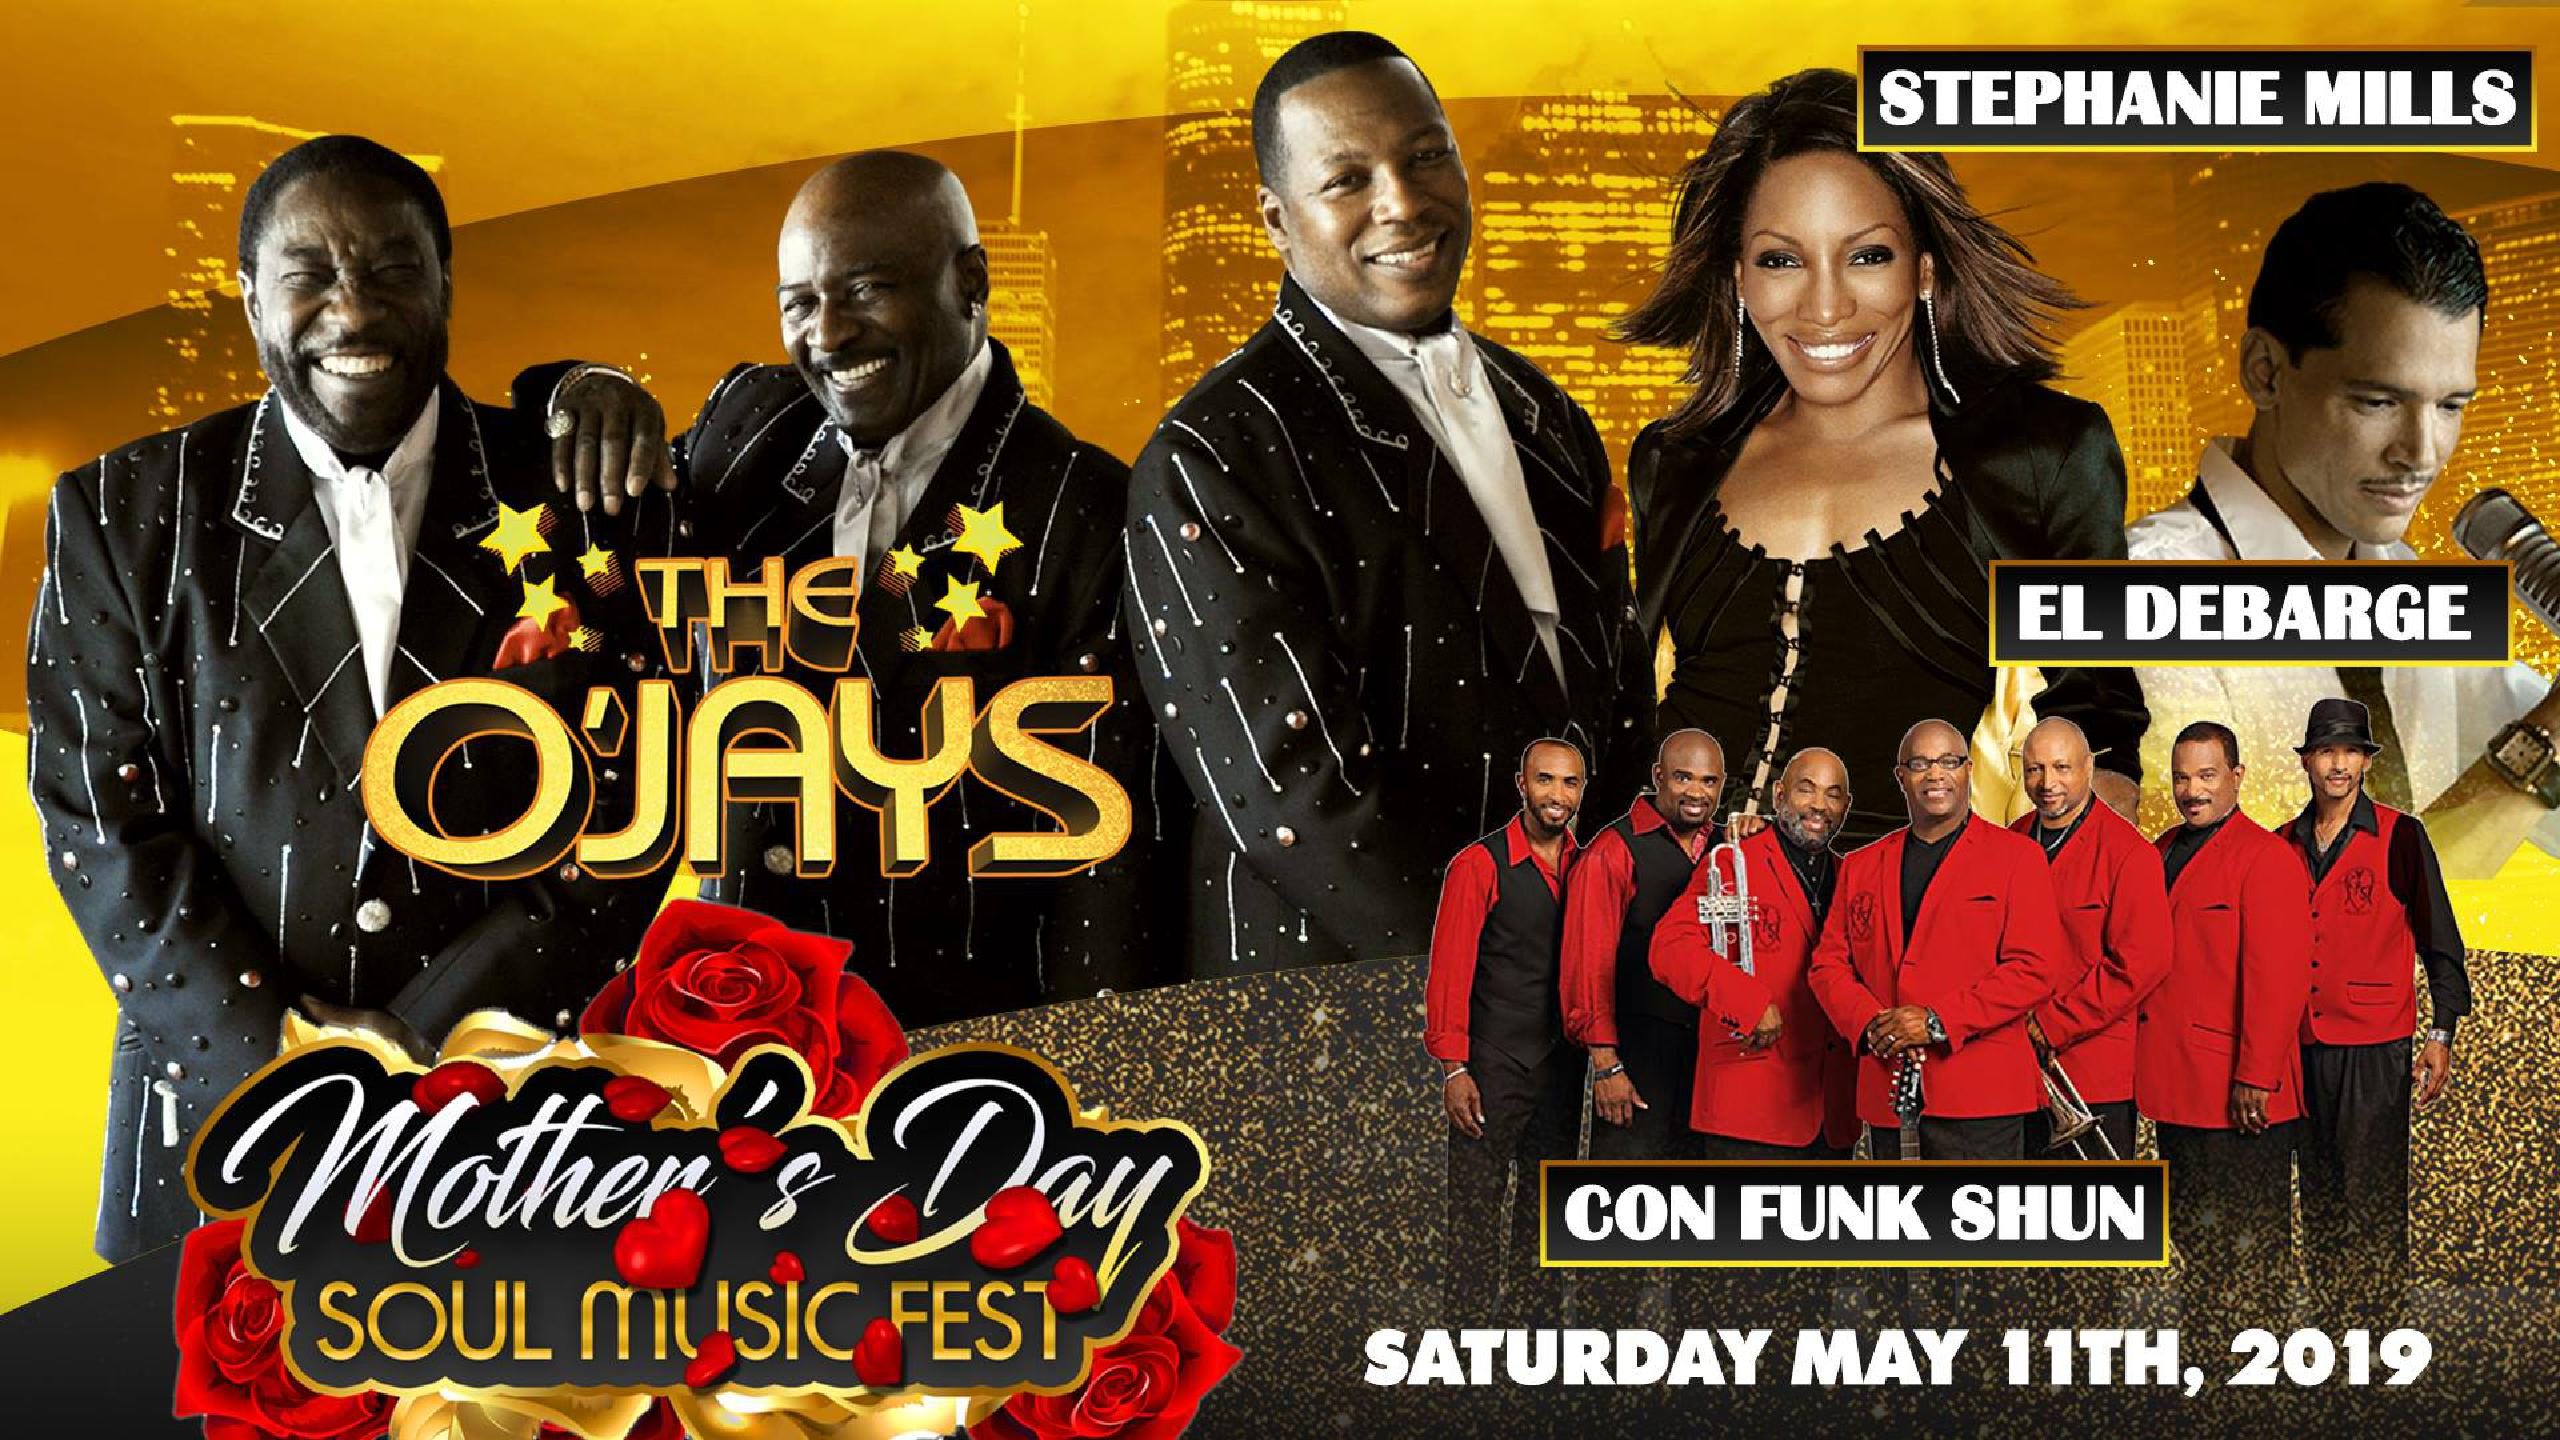 Mother's Day Soul Music Fest 2019  Tickets, lineup, bands for